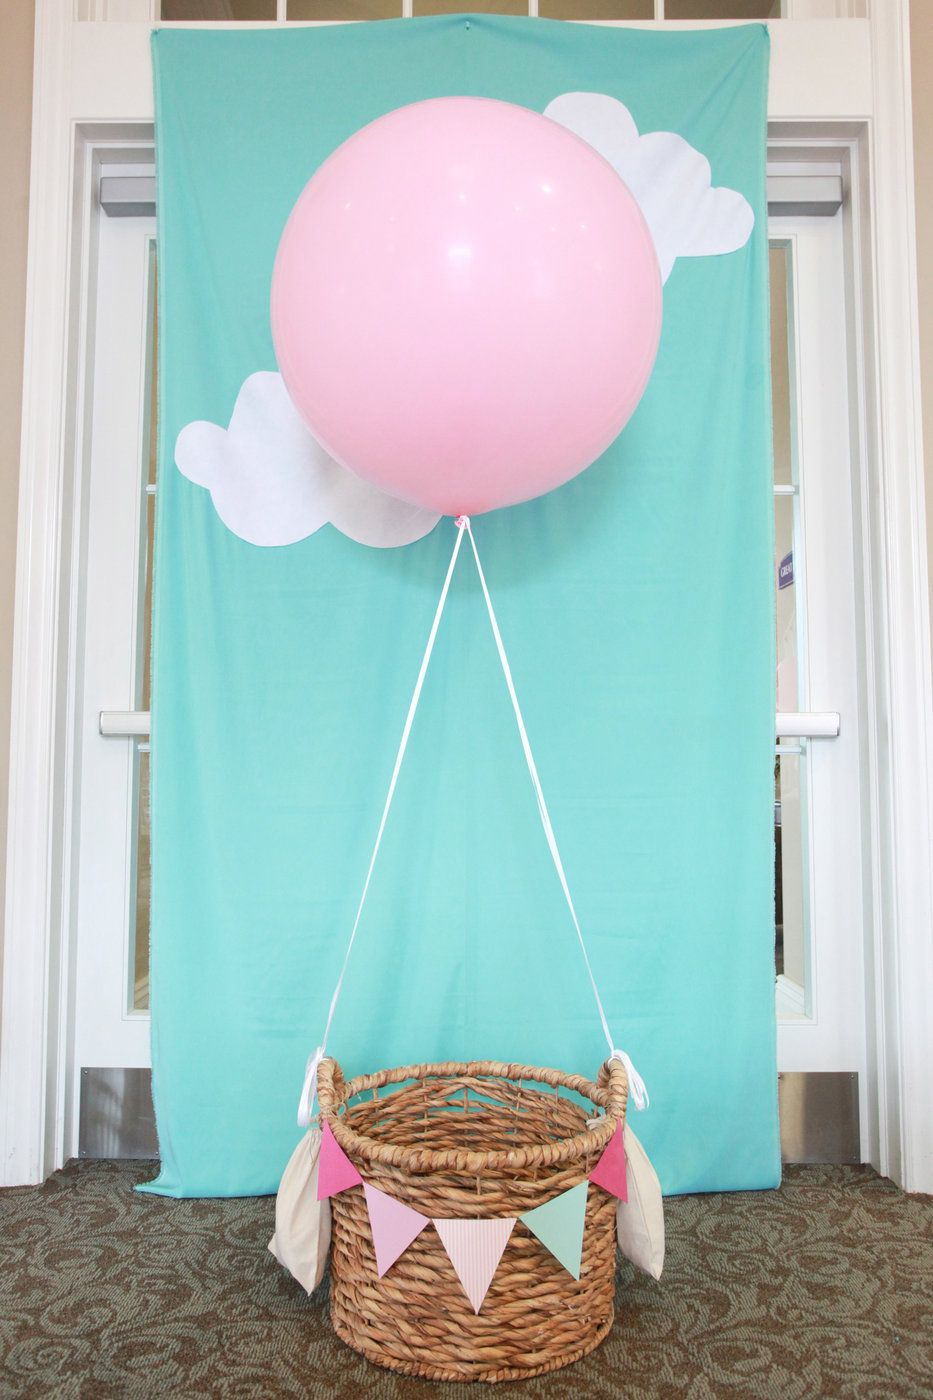 Foto hintergrund supers mit ballon f r baby party - Baby shower party ideen ...